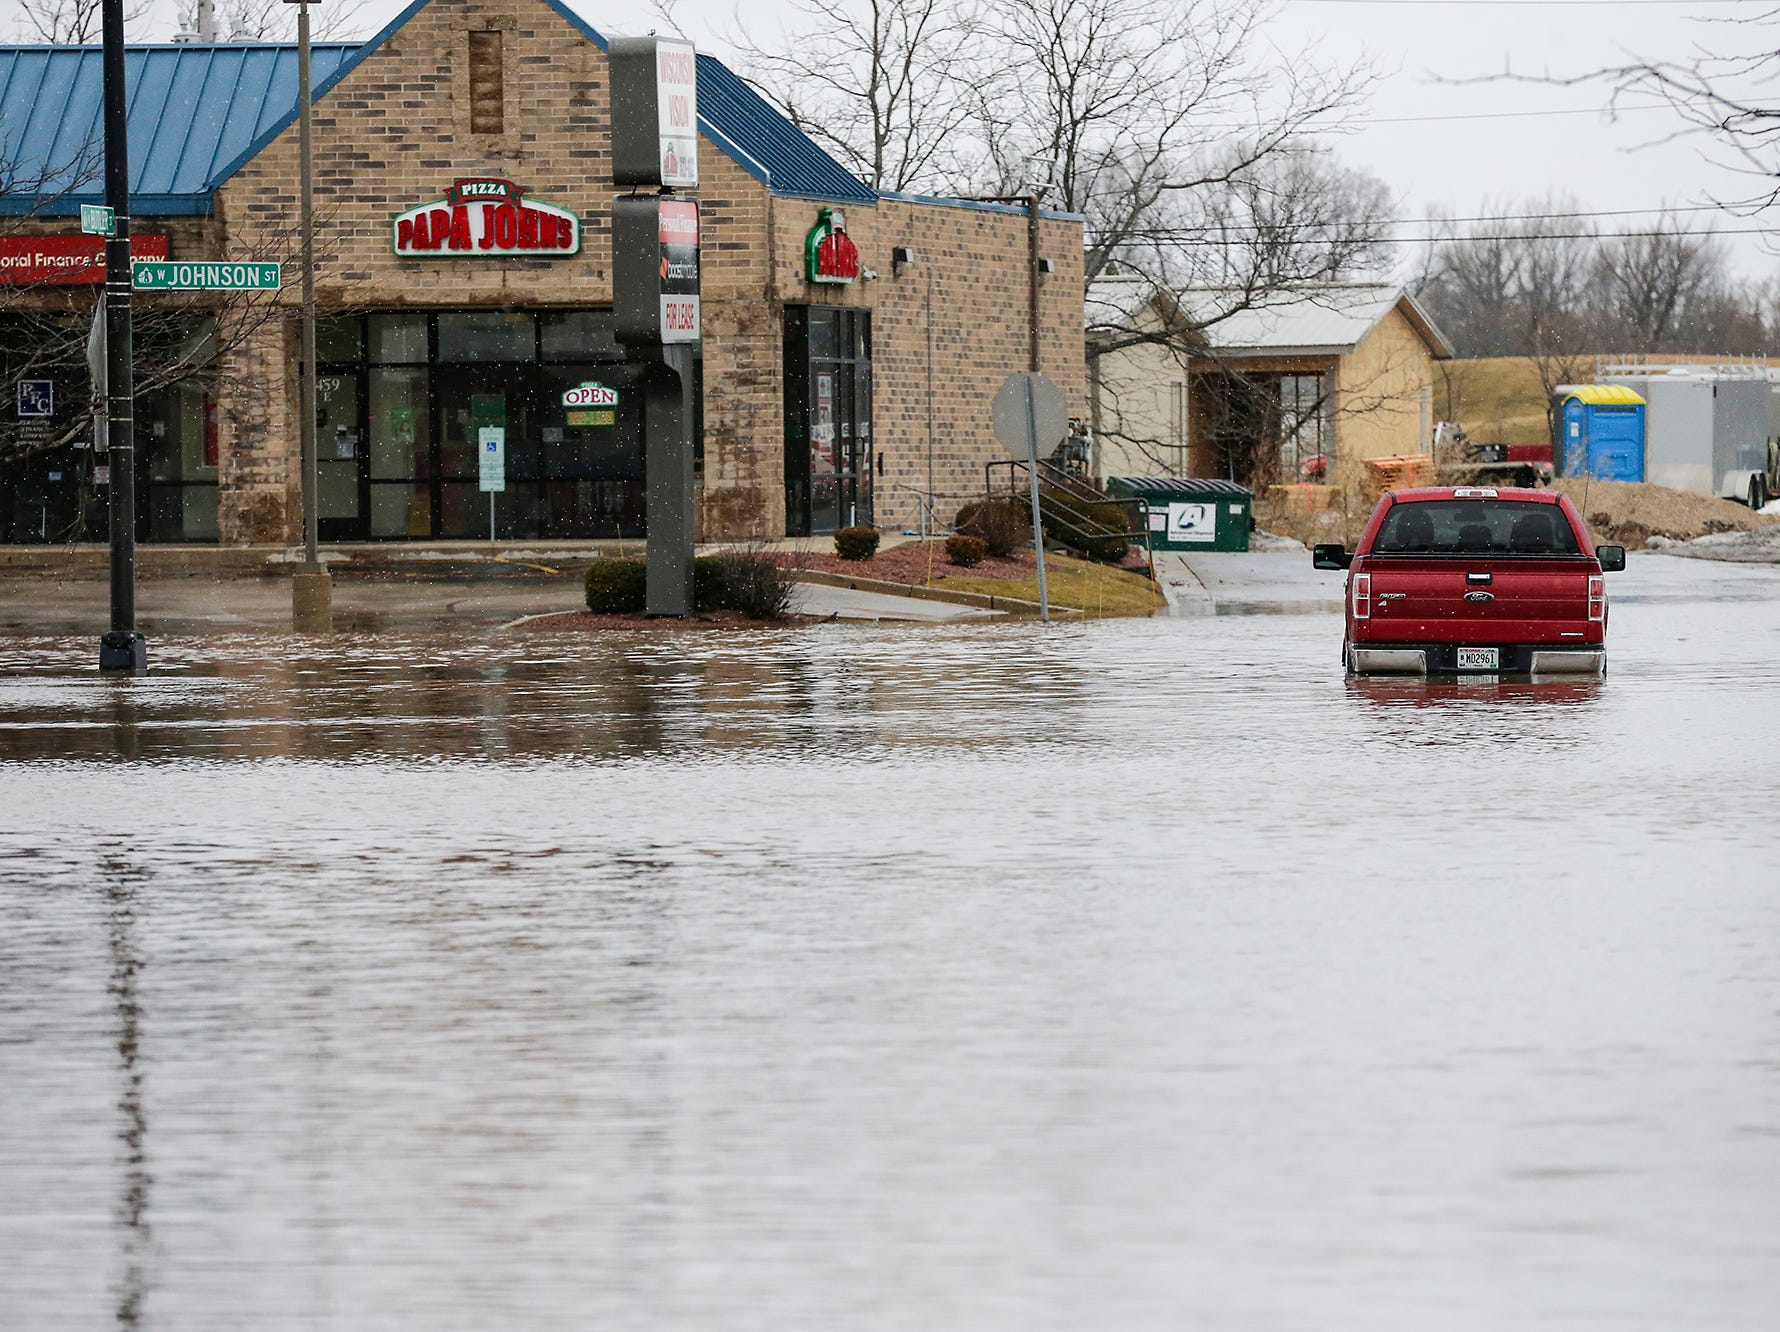 A red pick-up truck sits stalled in floodwaters Friday, March 15, 2019 at the intersection of Johnson and Burnet Streets in Fond du Lac, Wis. Ice jams on the east branch of the Fond du Lac River and heavy rain caused widespread flooding problems in the city on Thursday the 14th. Doug Raflik/USA TODAY NETWORK-Wisconsin